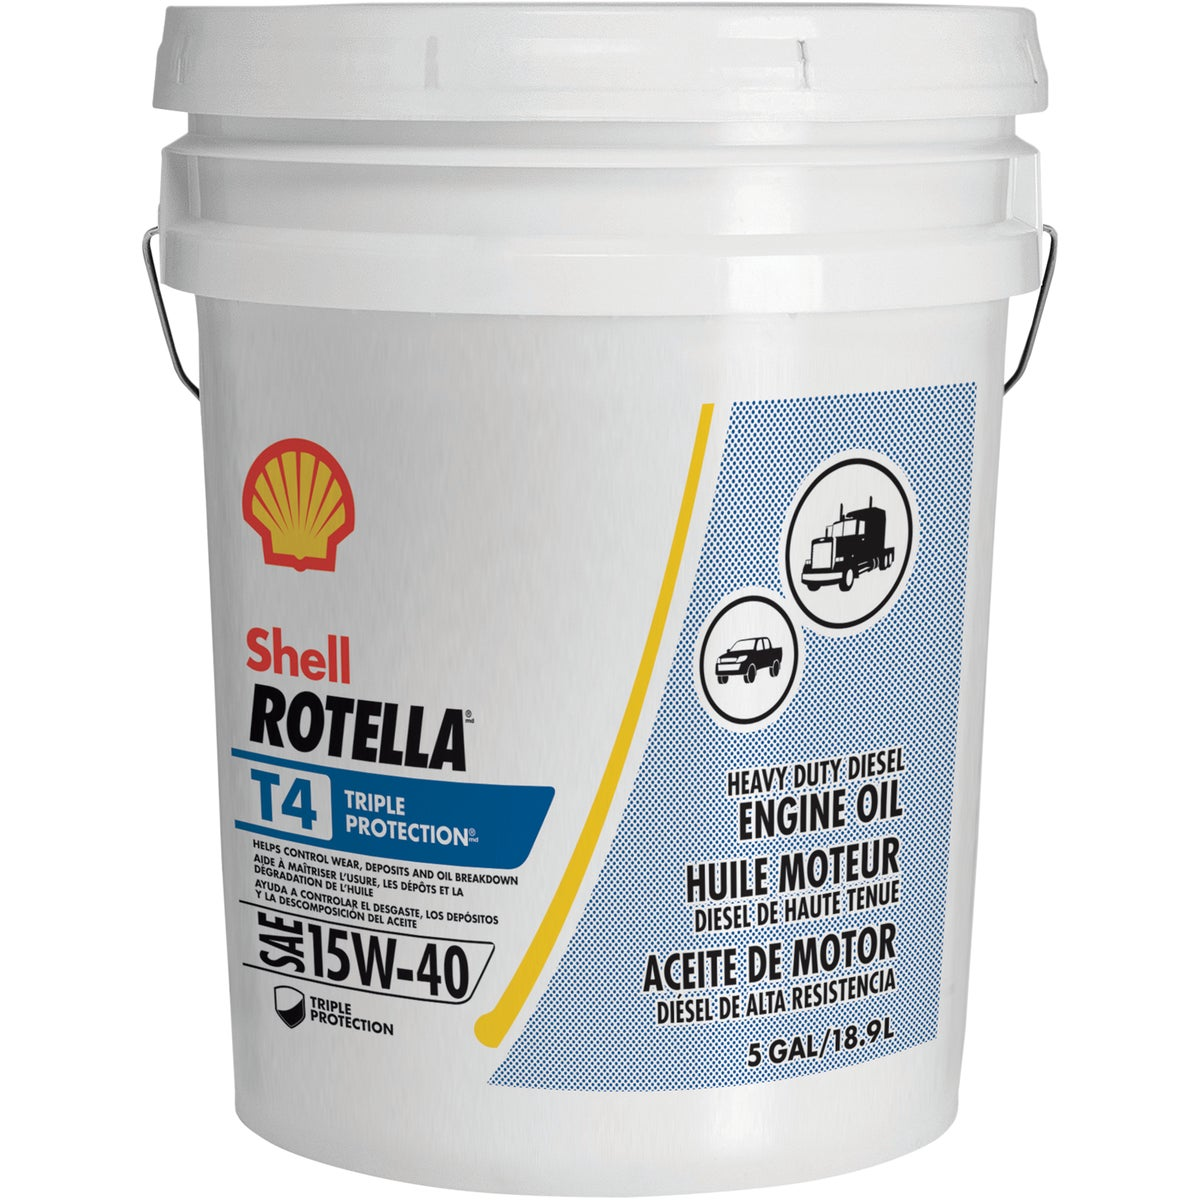 5GAL HD 15W40 MOTOR OIL